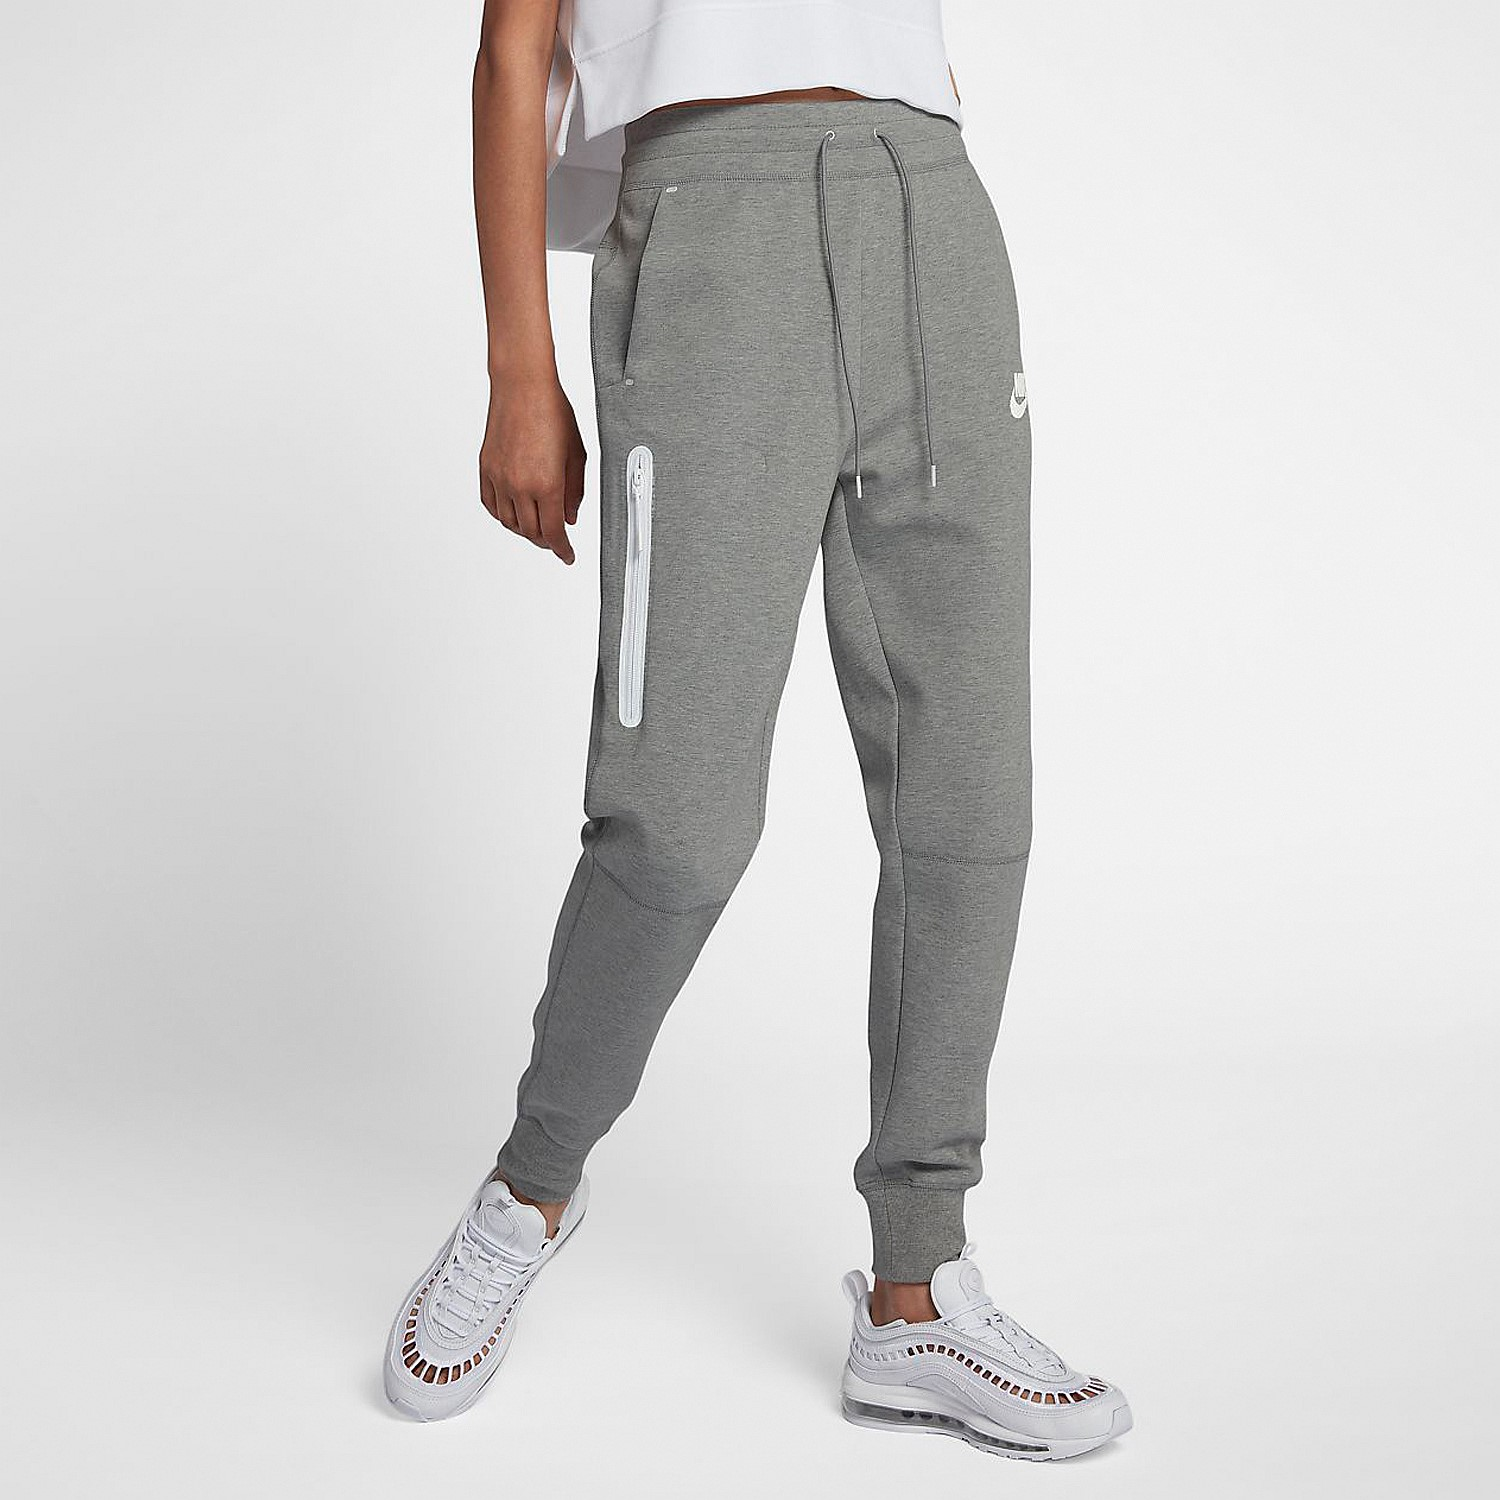 41c90837622e8 Women's Clothing | Women's Lifestyle and Training Clothing Online |  Stirling Sports - Tech Fleece Pants